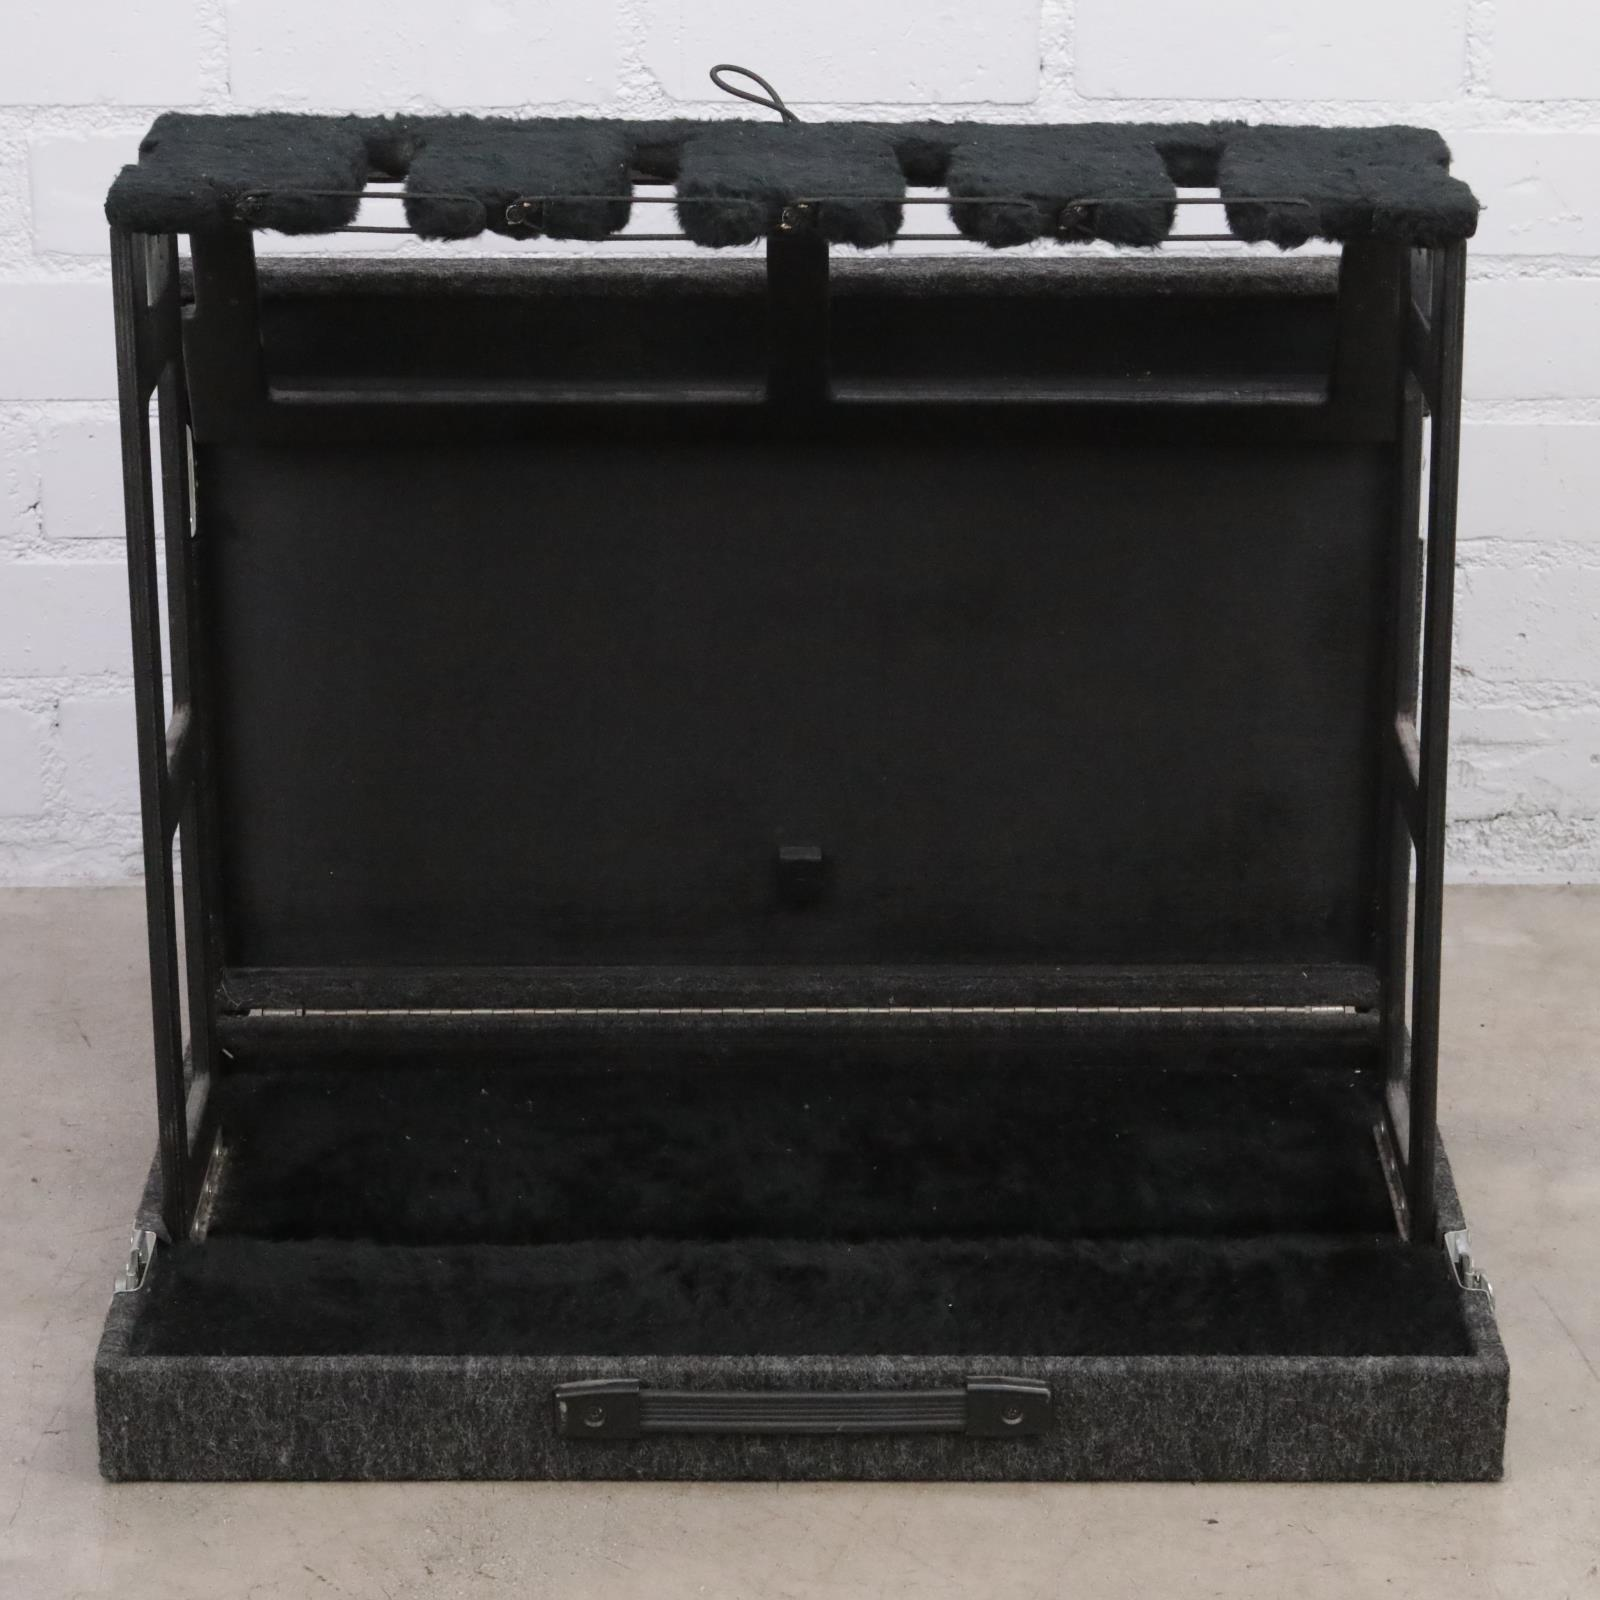 Ultracase GSX-4 Four Rack Collapsible Guitar Stand Owned By David Roback #44708